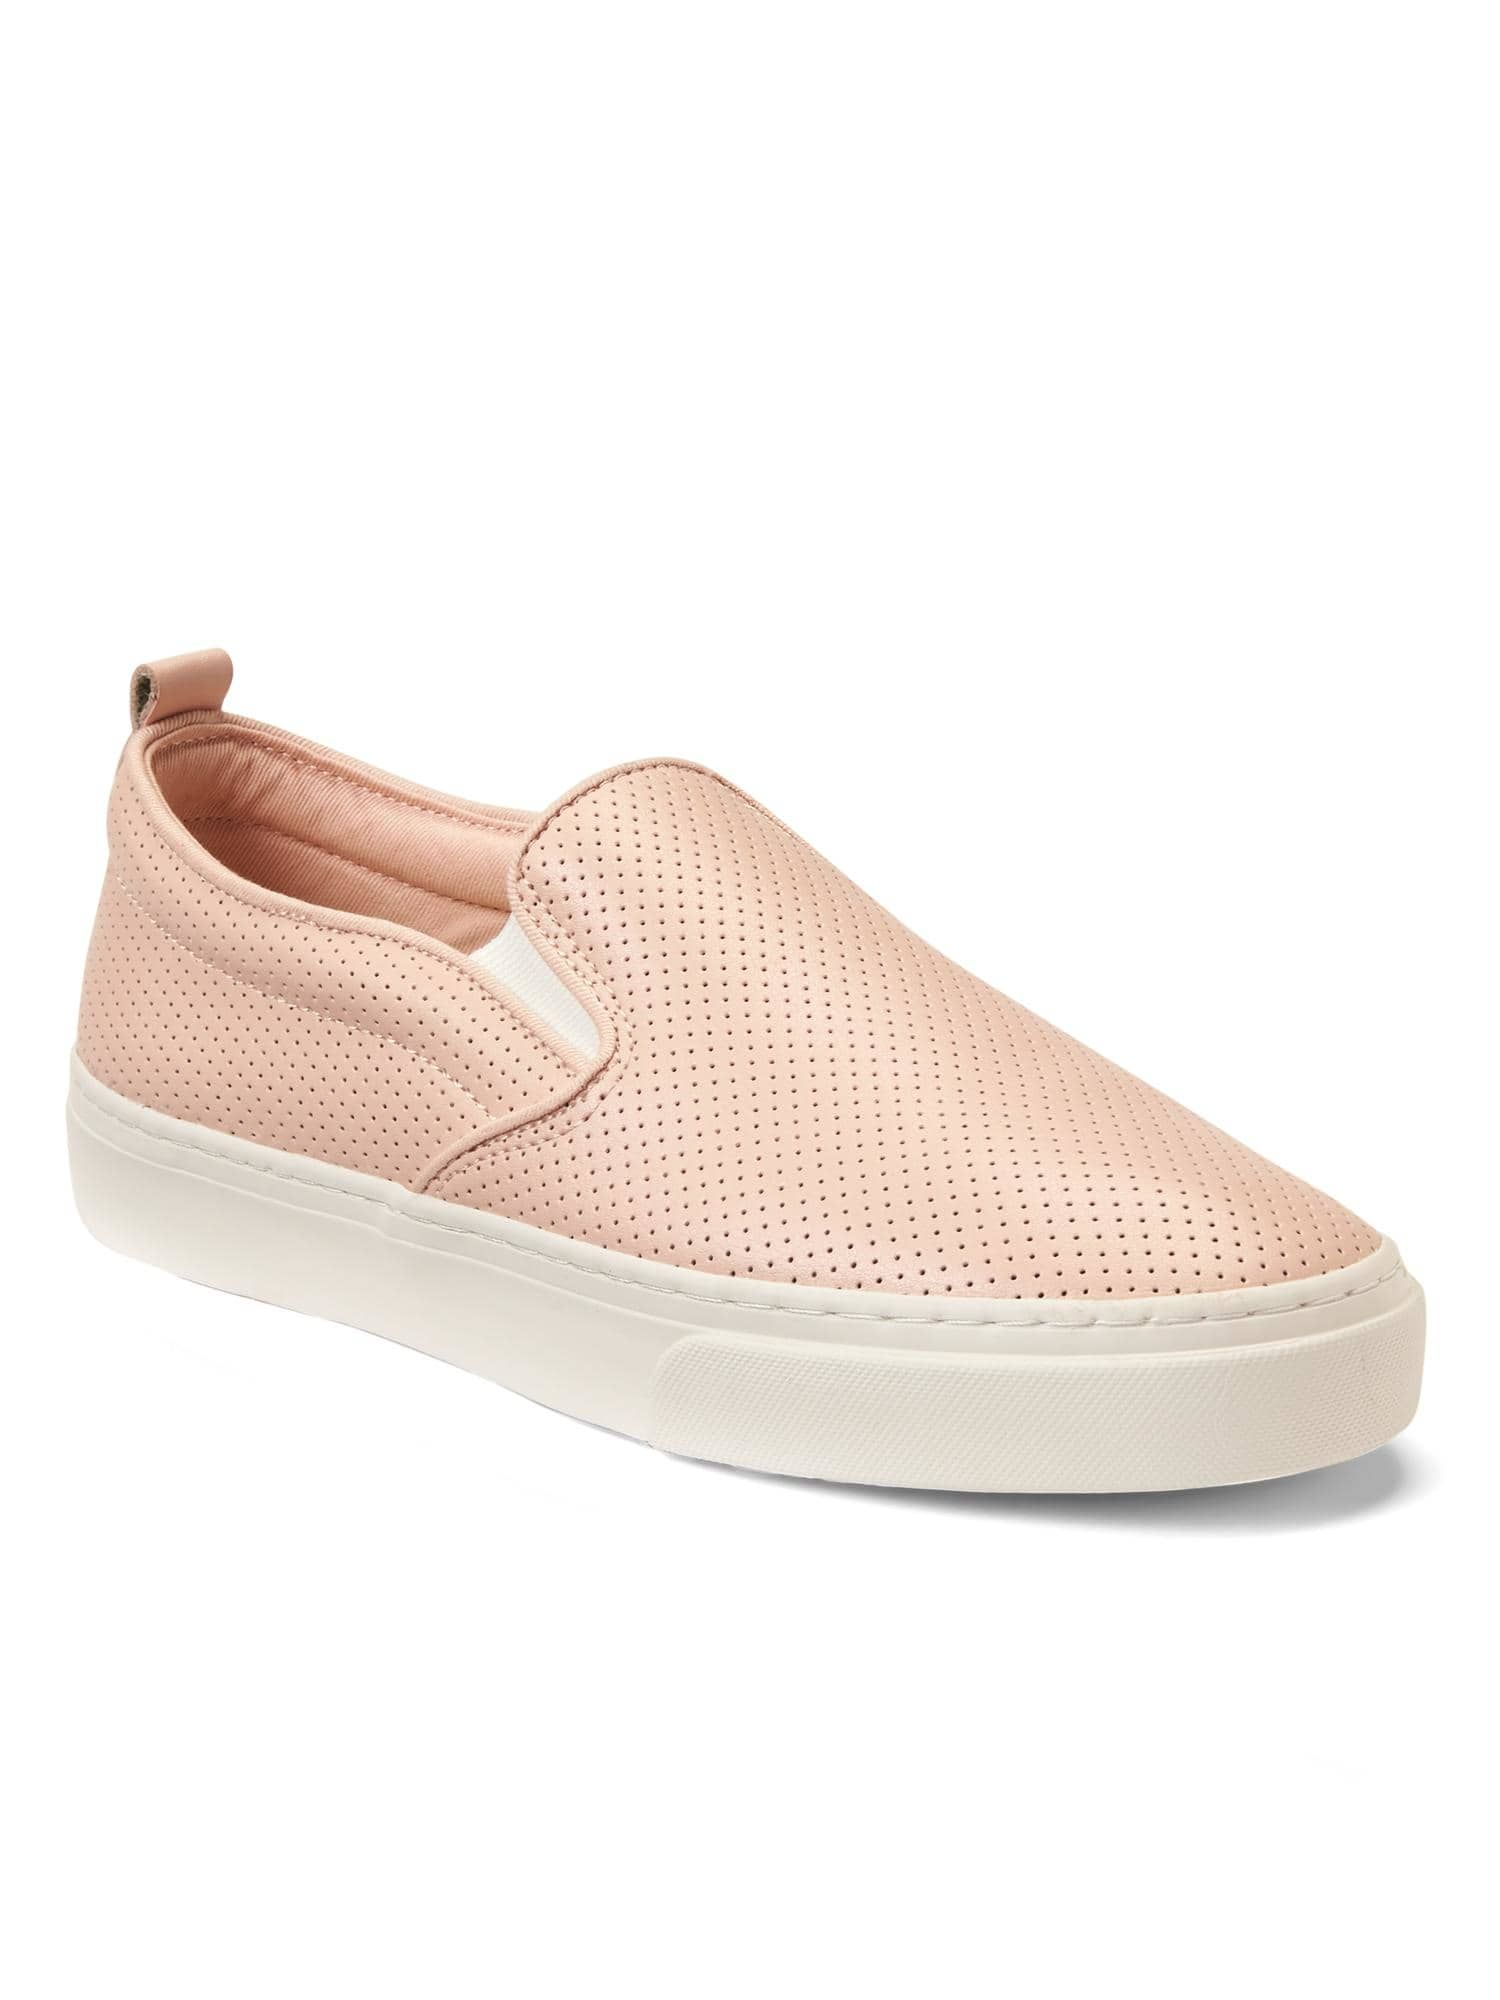 Light tan leather slip on trainers cheap sast i9xWf5GH